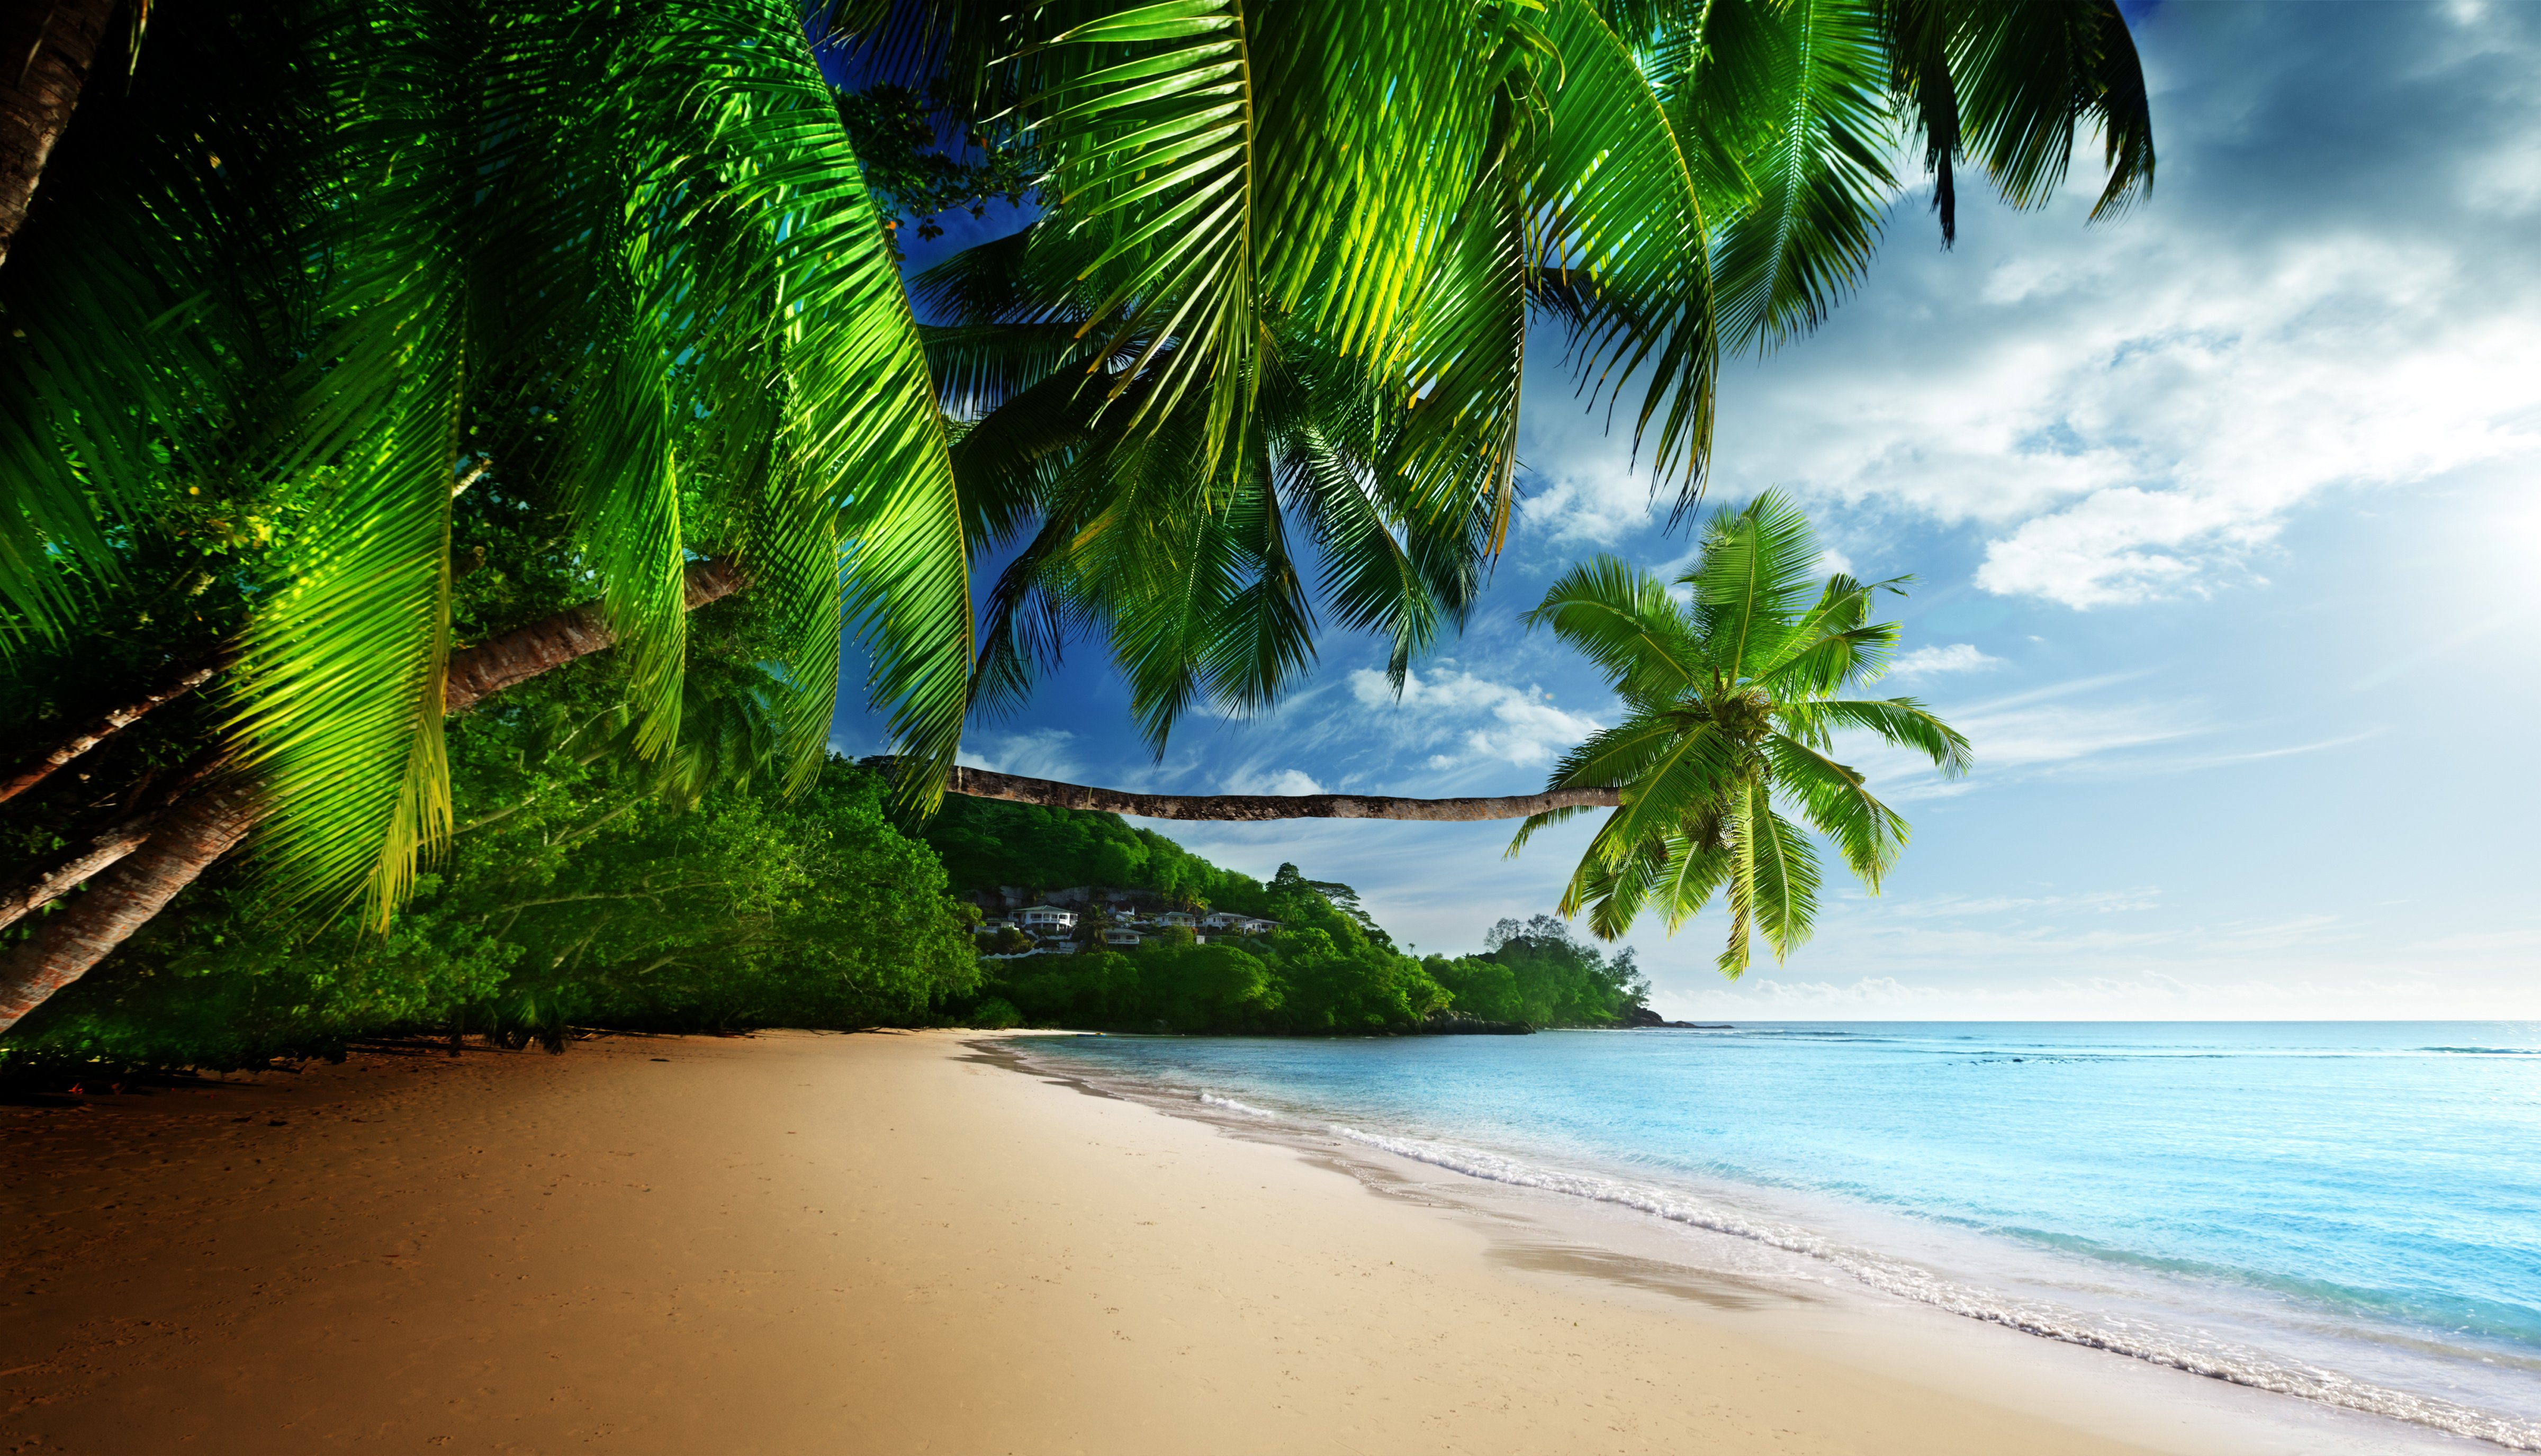 Beach Desktop Background Latest Hd Wallpapers 4800x2751